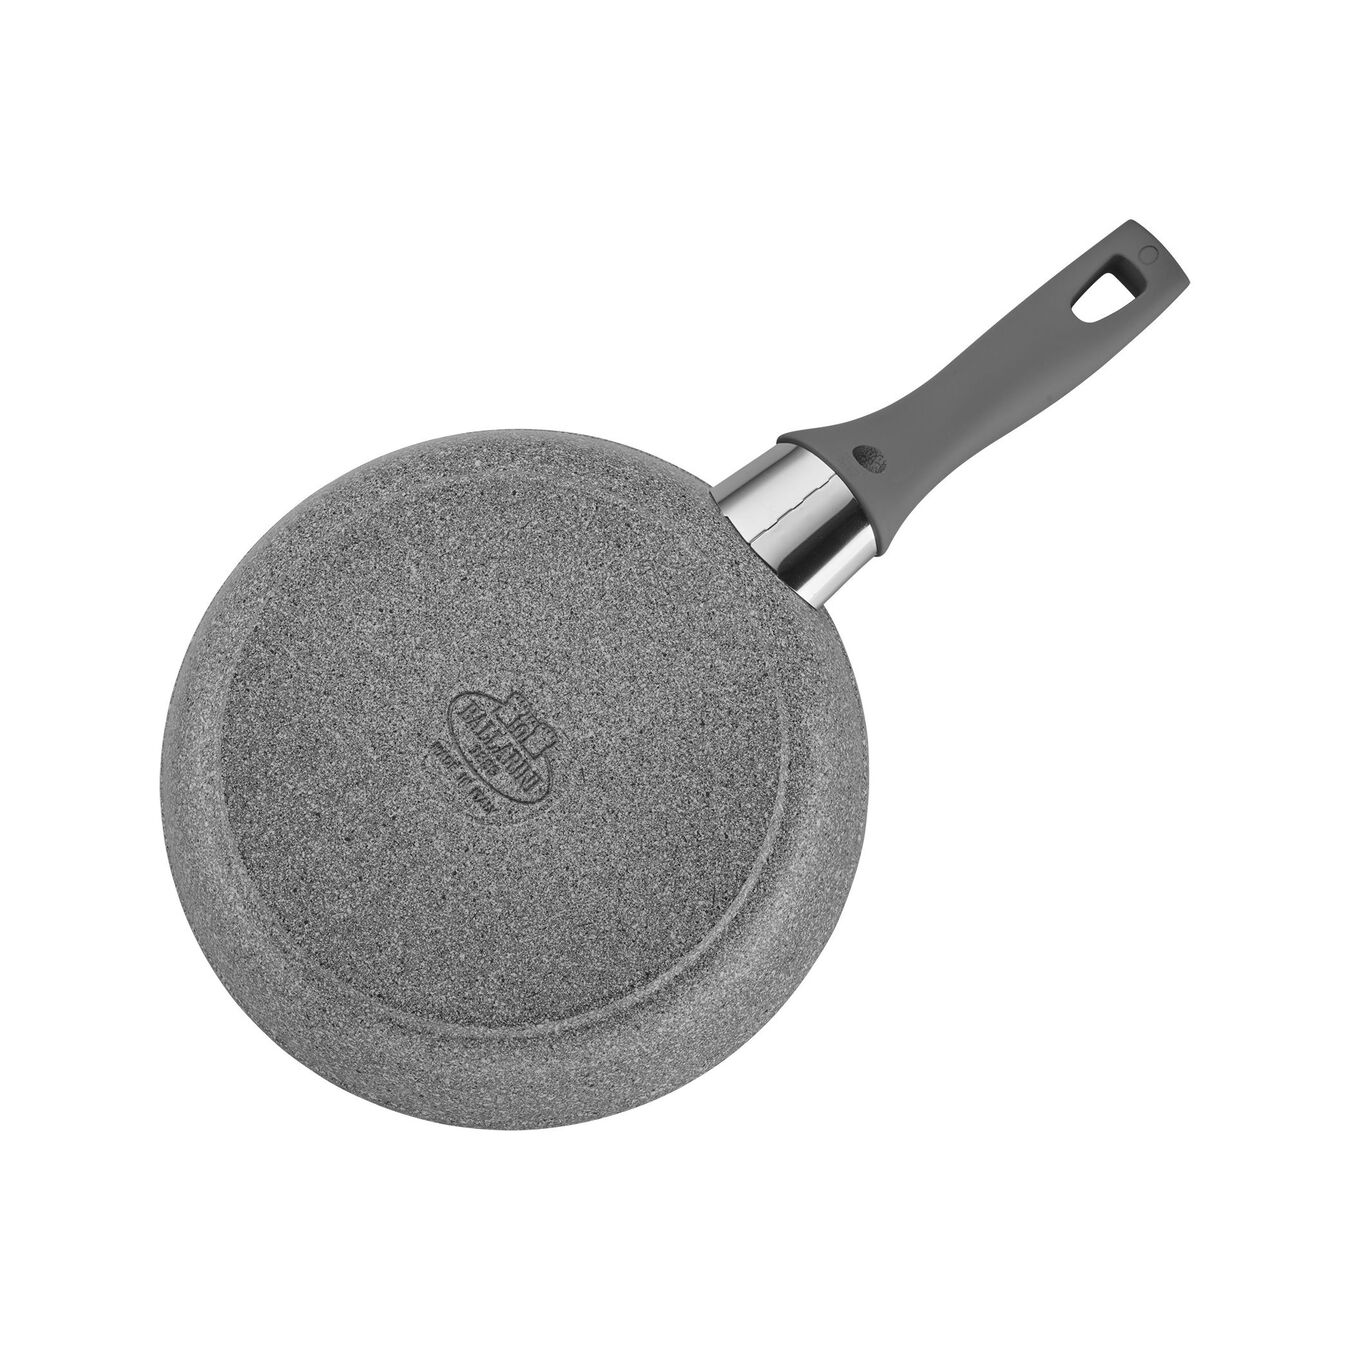 8-inch, Frying pan,,large 3